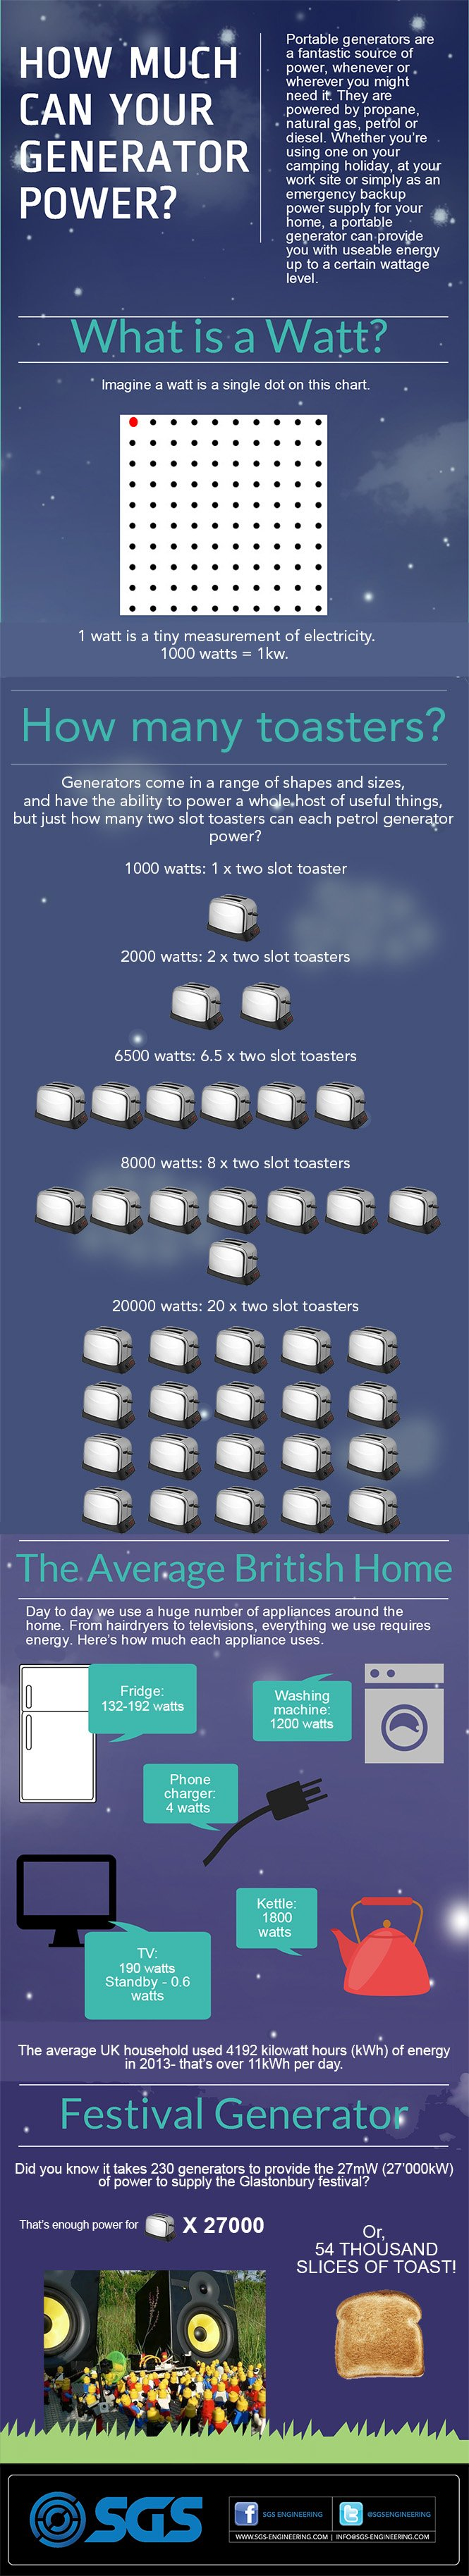 2014-08-20-How-much-can-your-Generator-Power